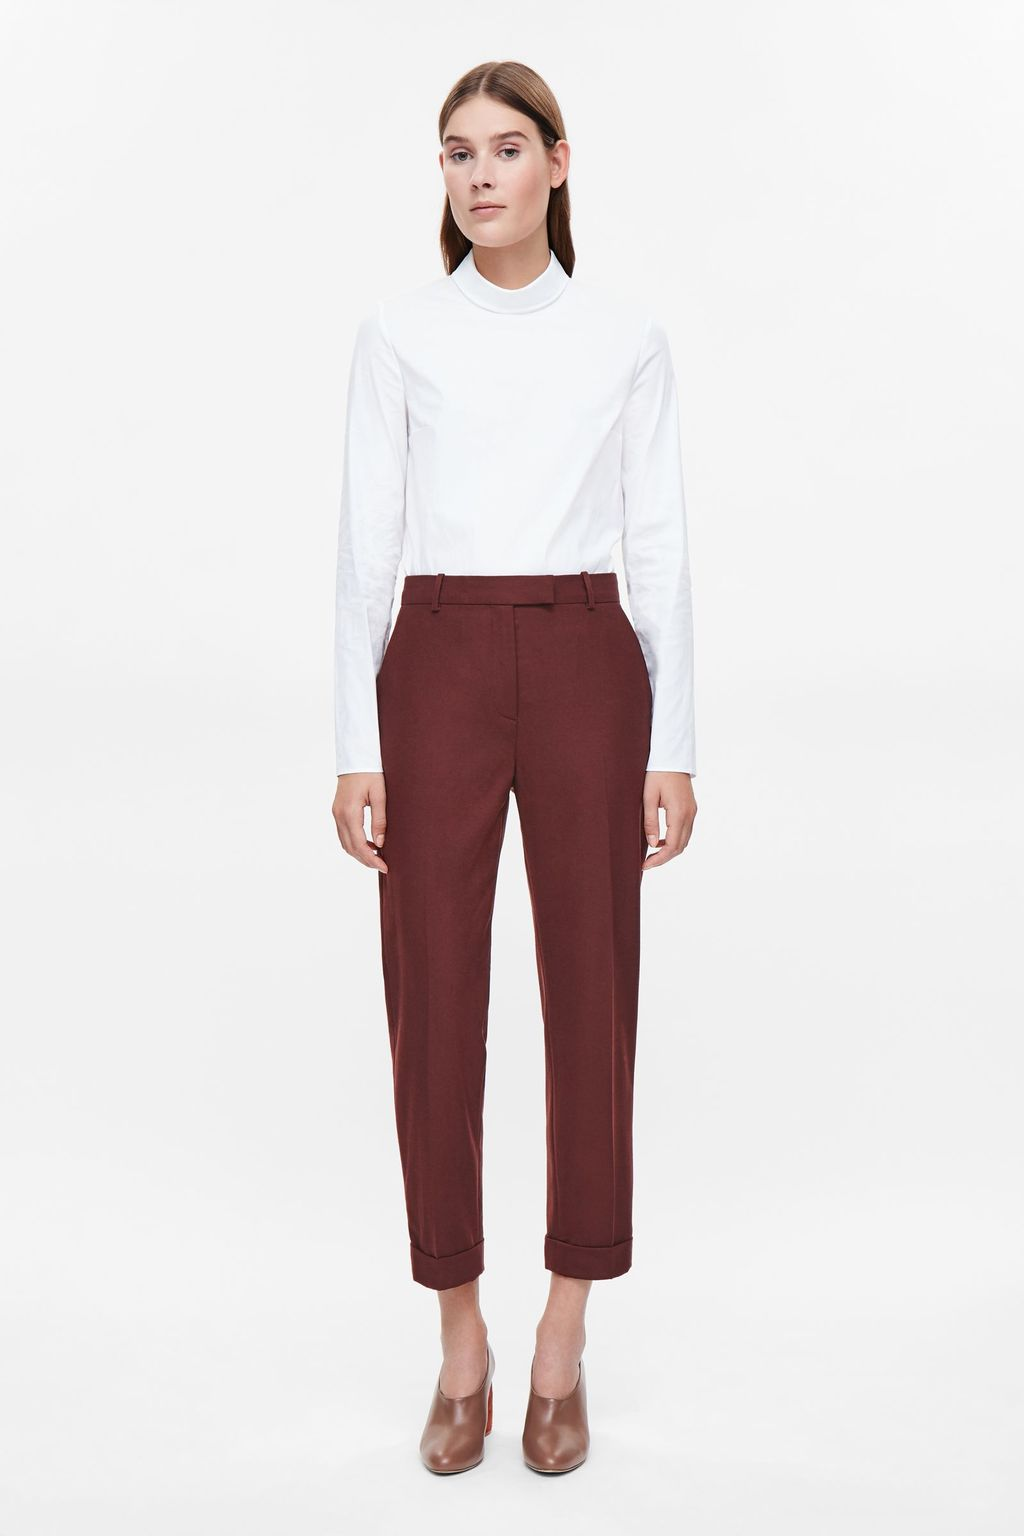 Straight Leg Wool Trousers - pattern: plain; waist: high rise; pocket detail: pockets at the sides; predominant colour: burgundy; occasions: casual, creative work; length: ankle length; fibres: wool - stretch; fit: slim leg; pattern type: fabric; texture group: woven light midweight; style: standard; season: a/w 2016; wardrobe: highlight